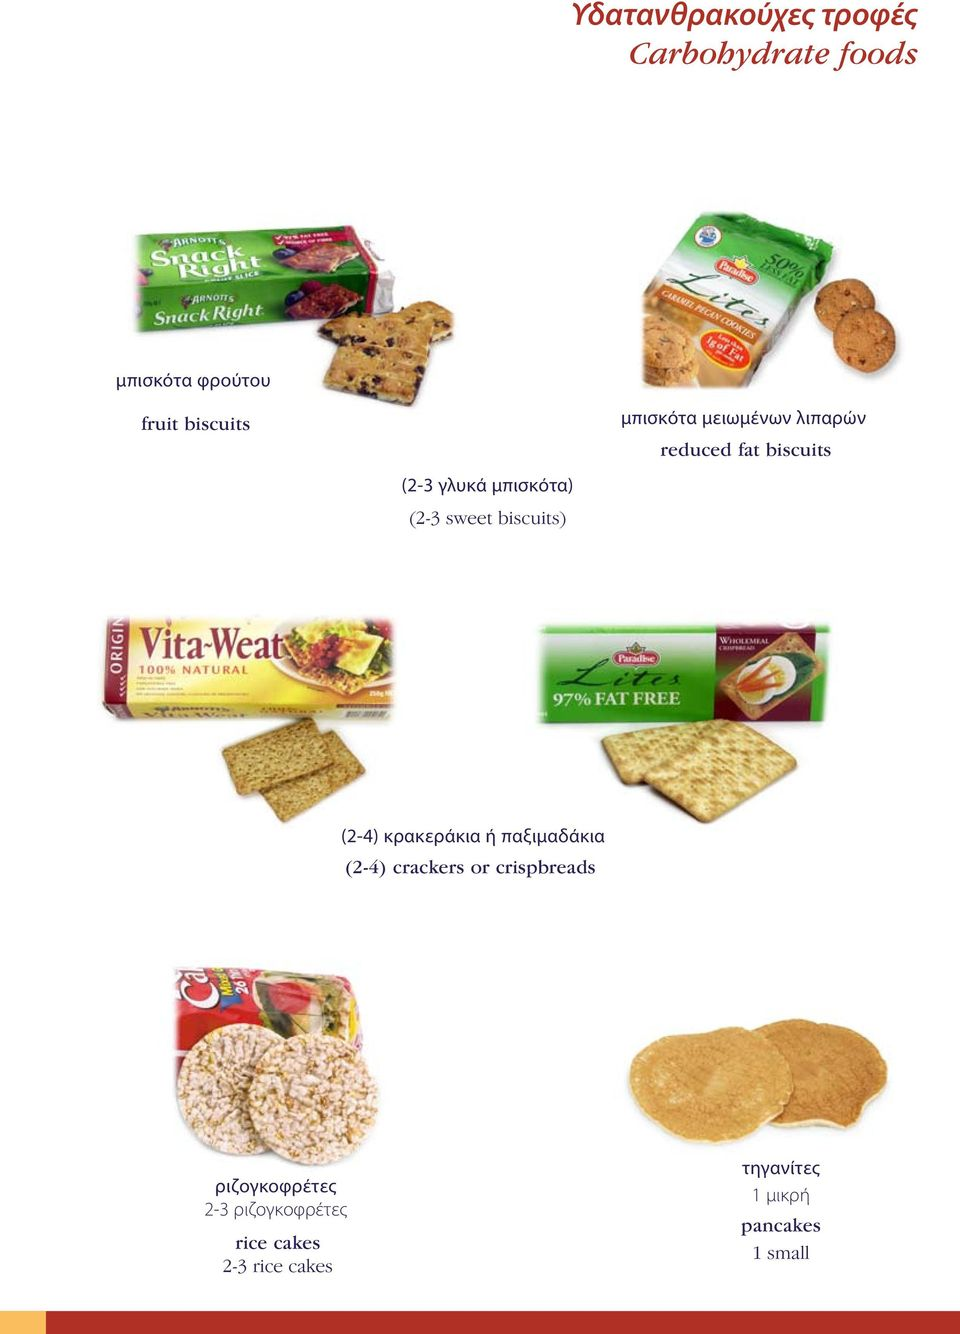 biscuits (2-4) κρακεράκια ή παξιμαδάκια (2-4) crackers or crispbreads